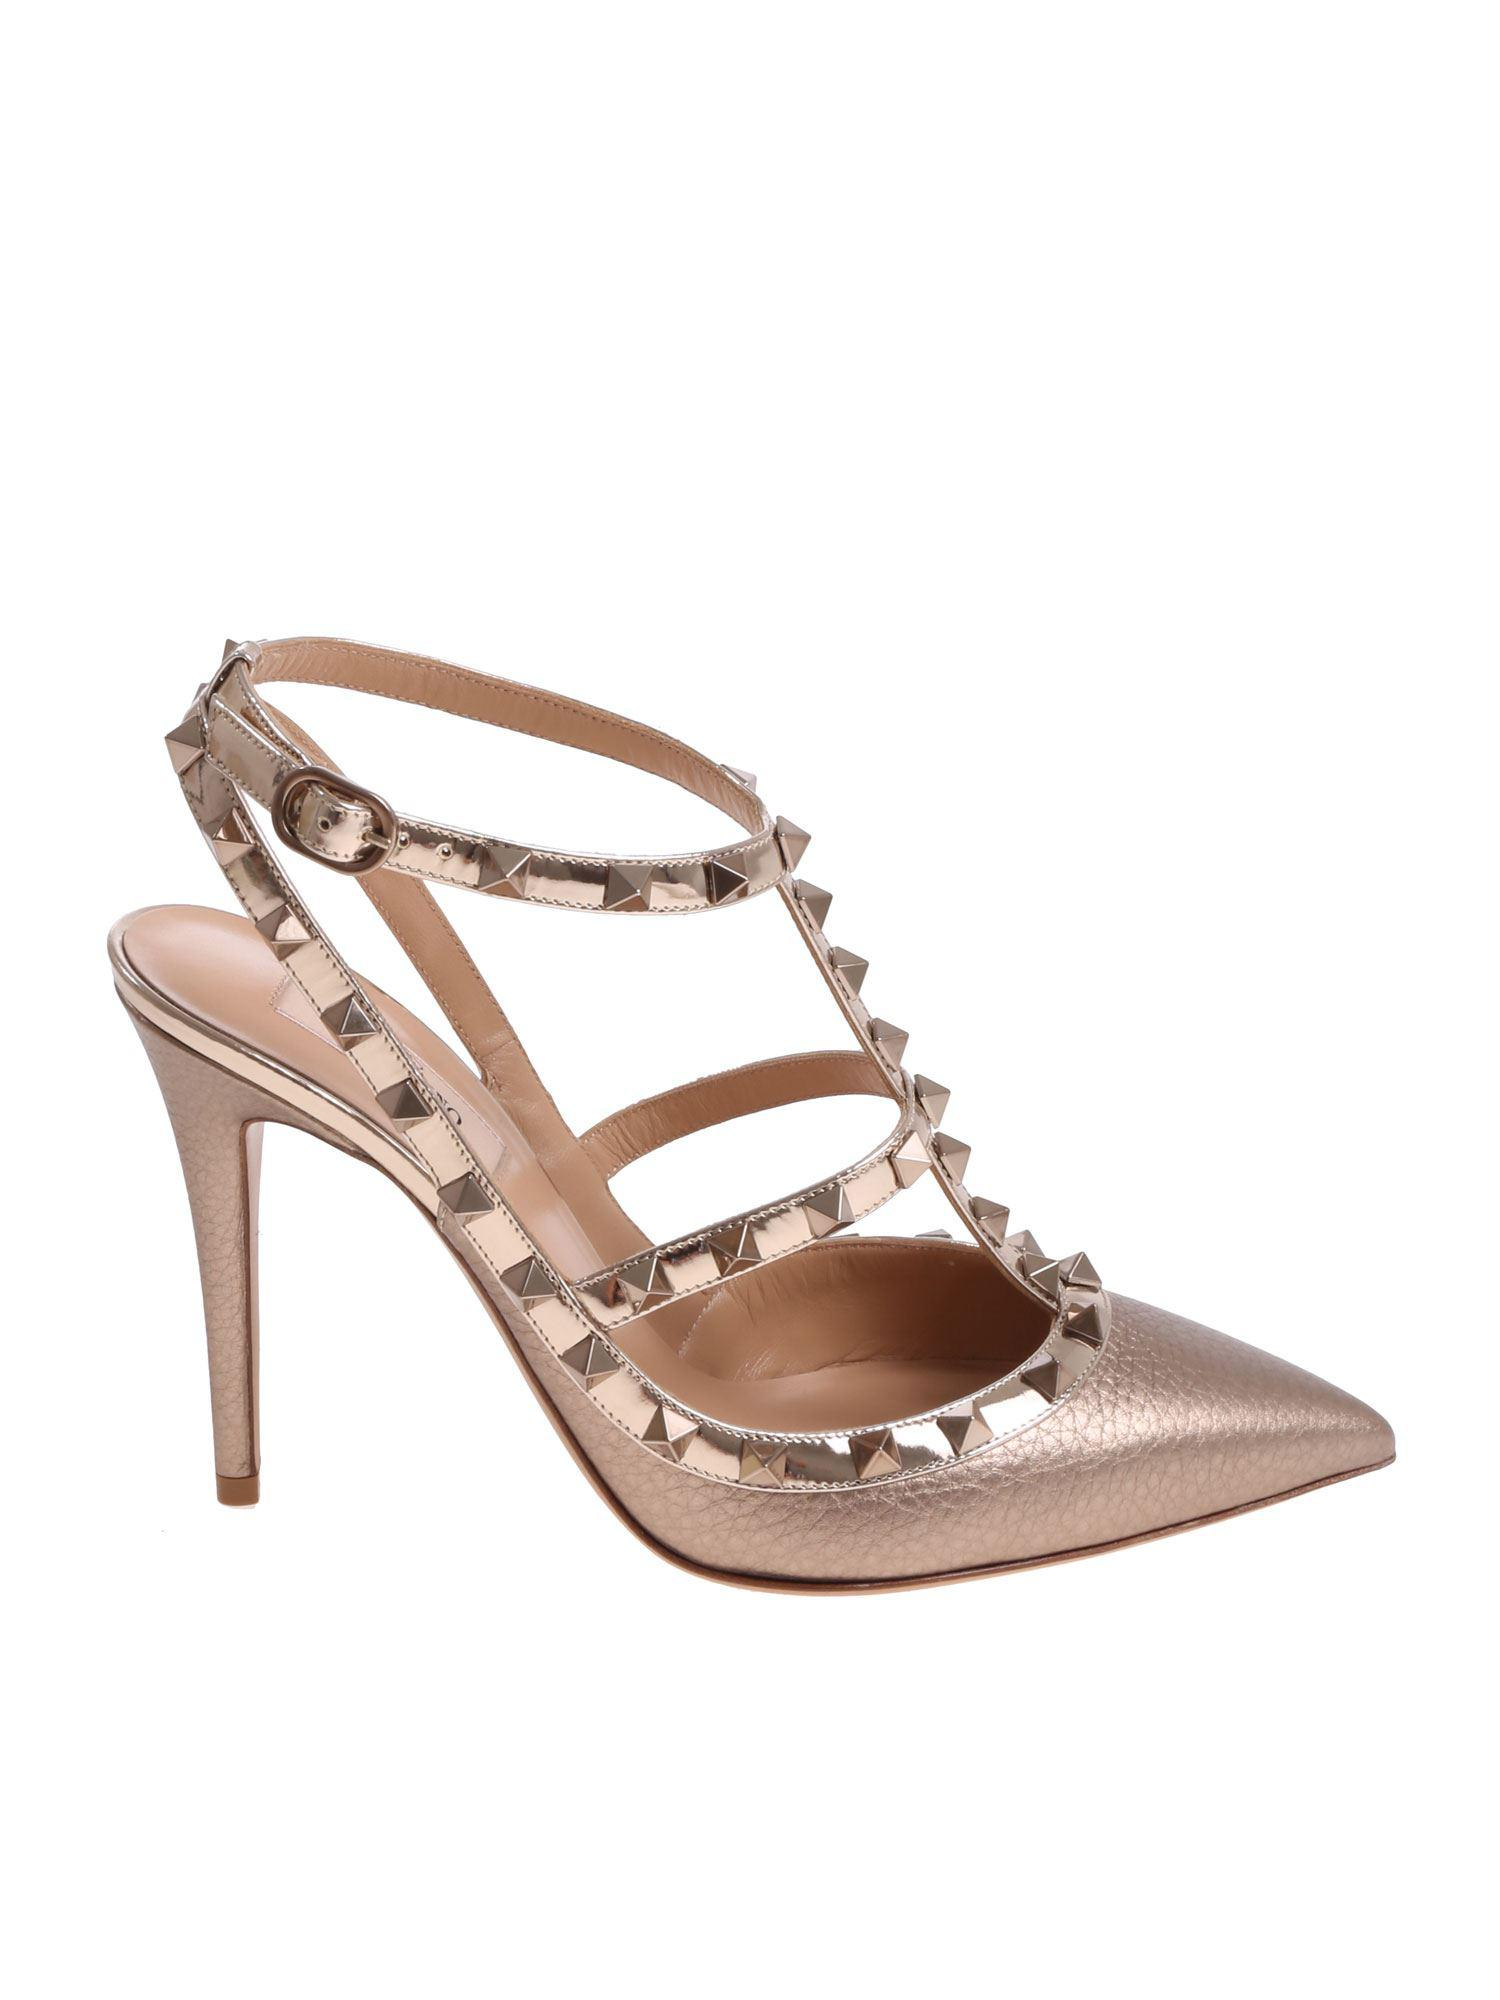 aae69a382ccc Lyst - Valentino Nude Rockstud Leather Pumps in Natural